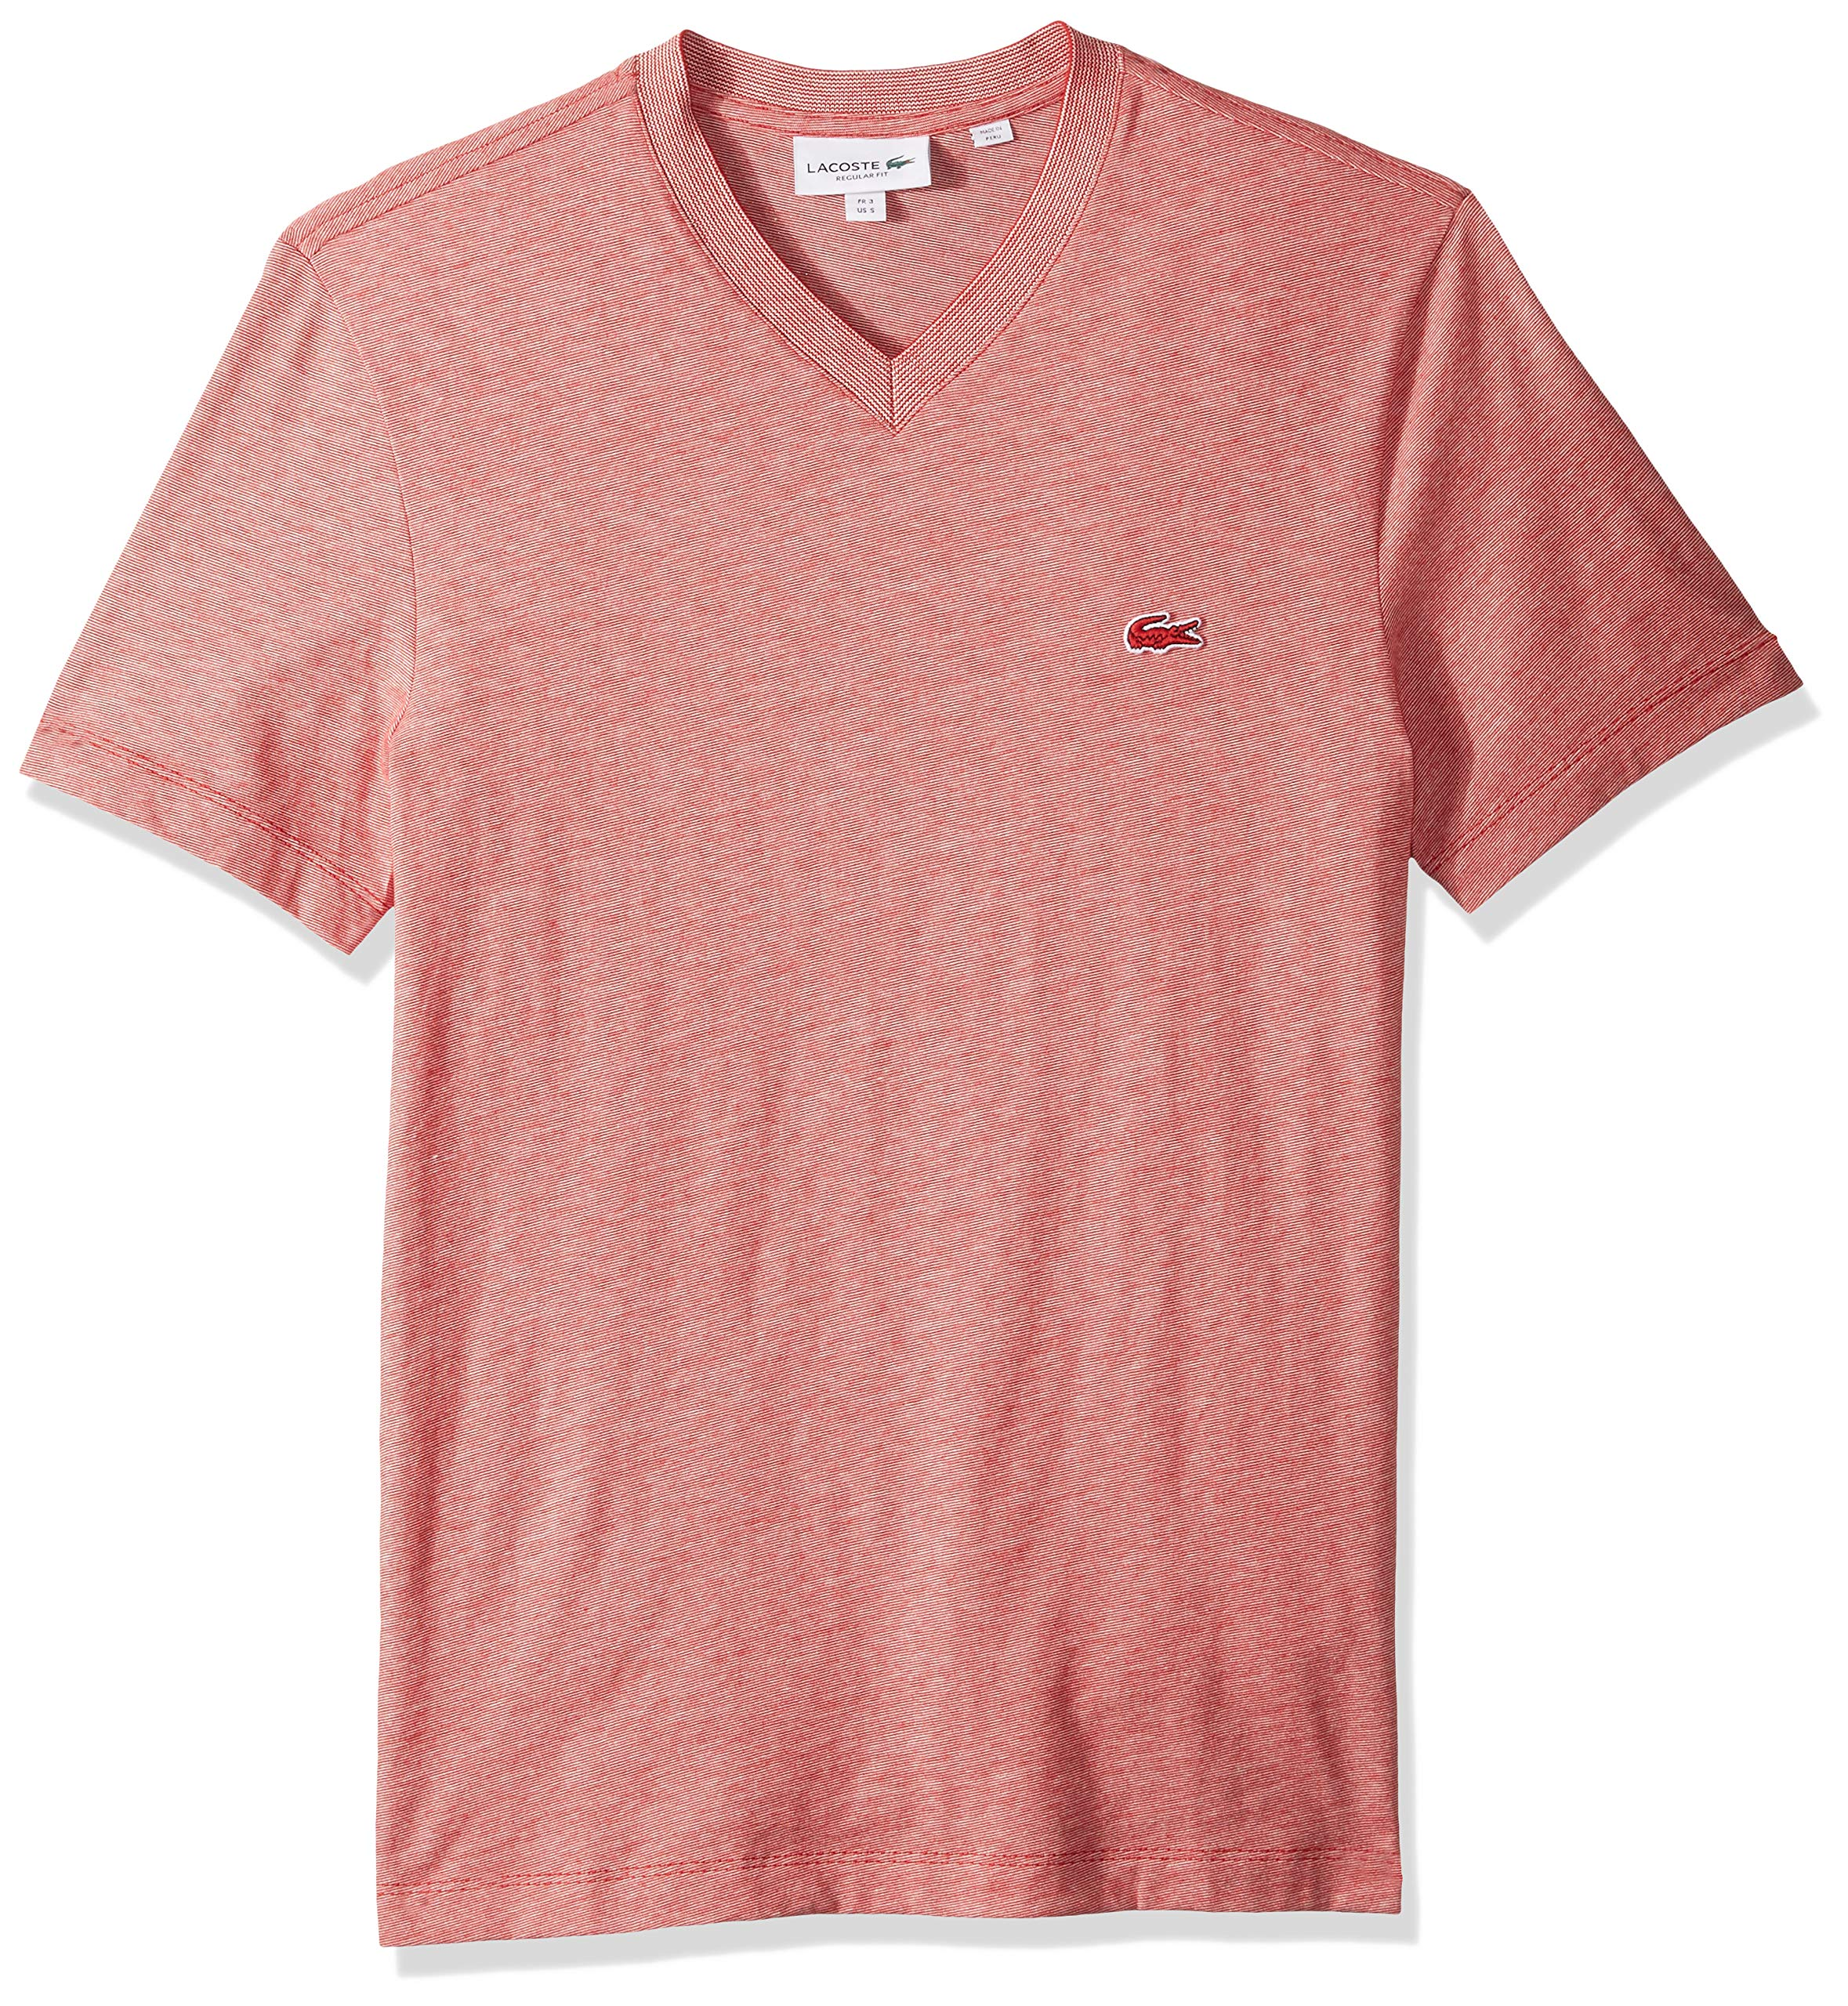 Lacoste Men's S/S Striped Jersey Raye T-Shirt Regular FIT, red/Flour, X-Large